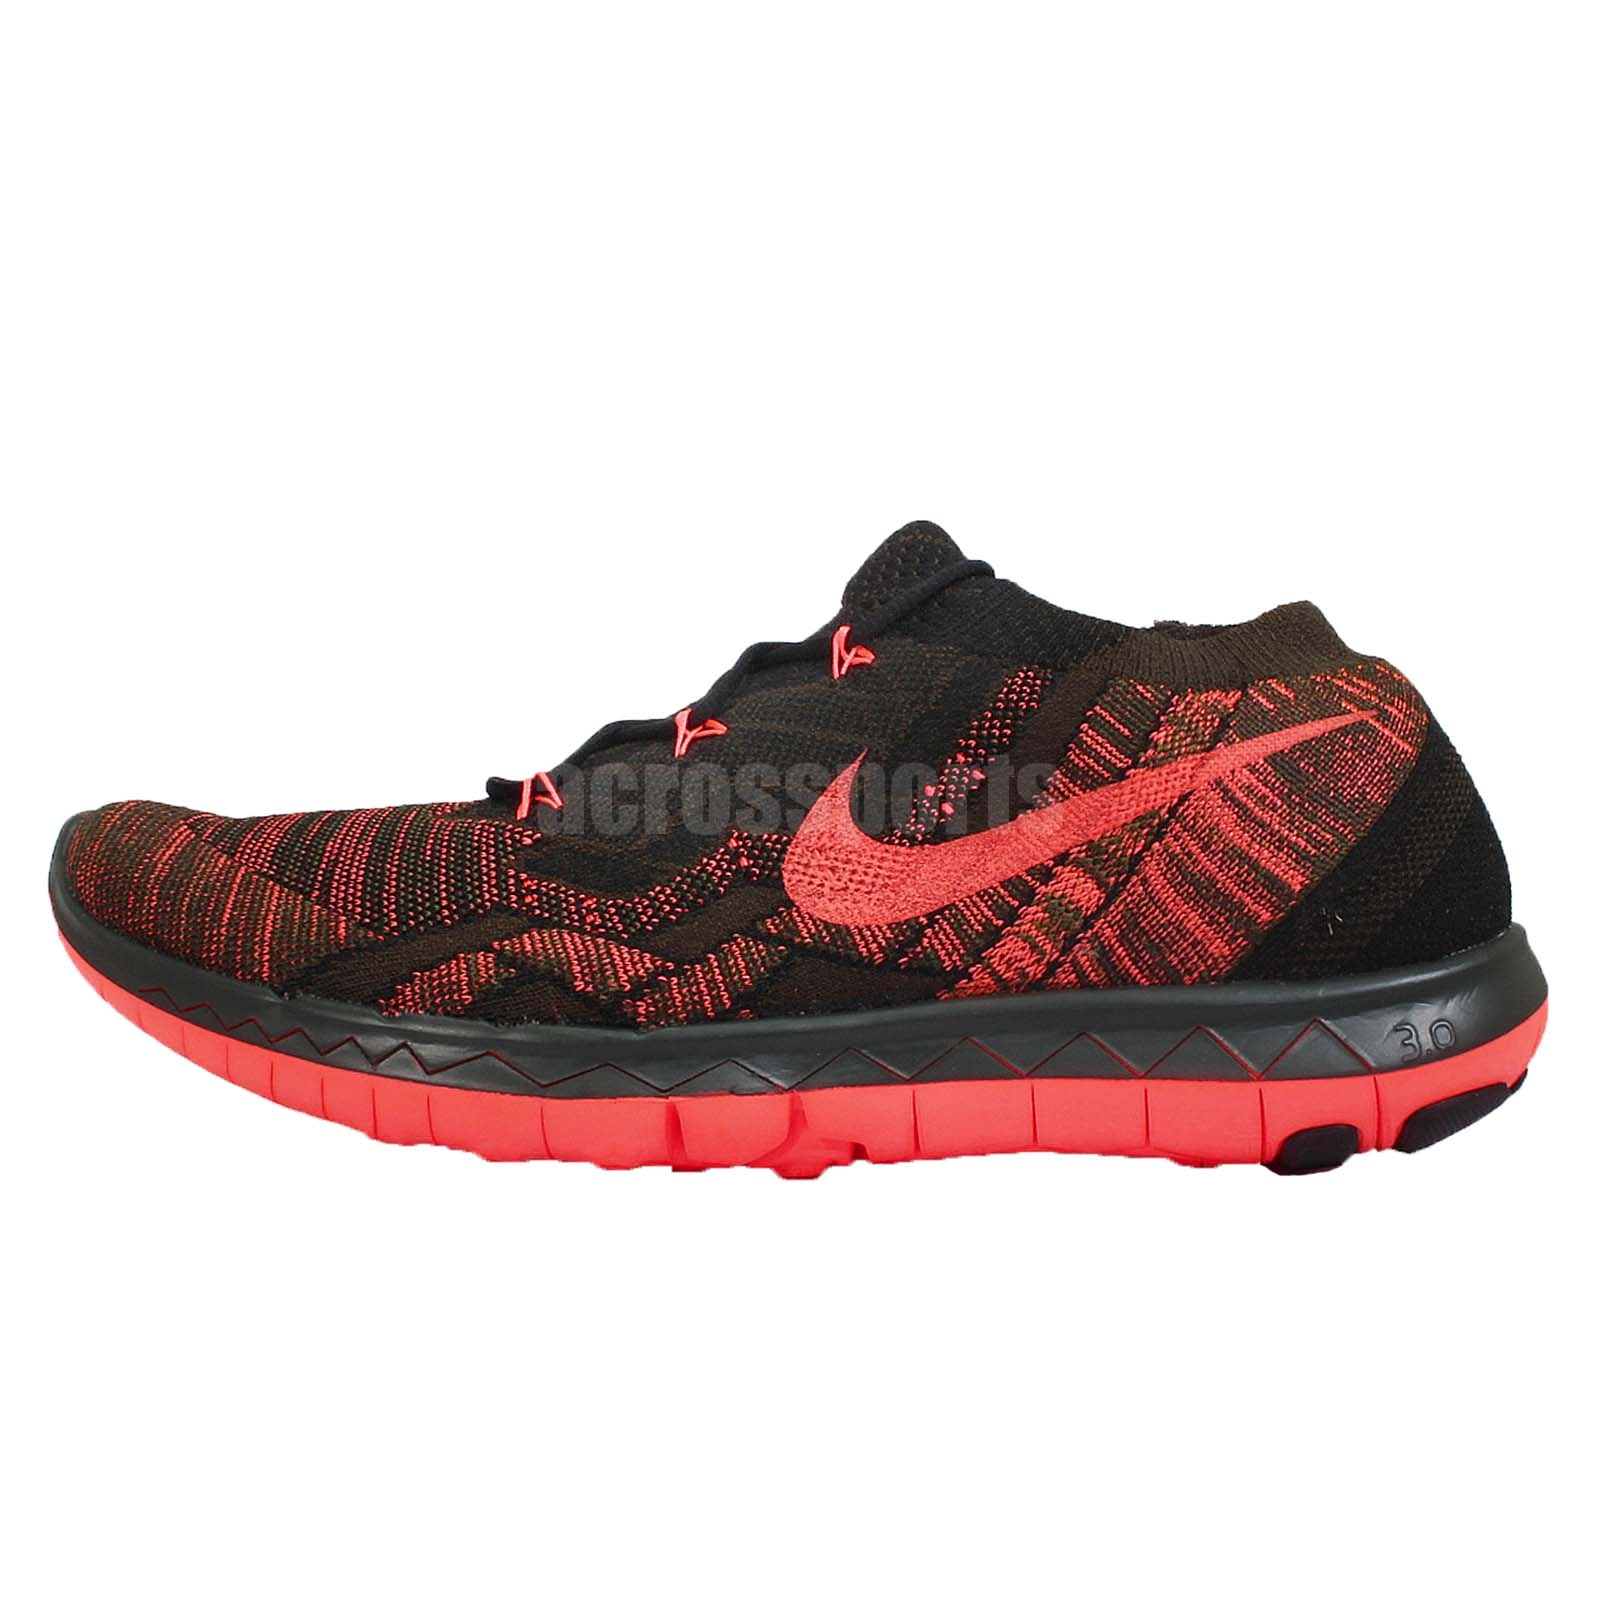 Sch Nike Flyknit Shoes Mens Trainers 15709 Bn 76497 I Taiwan